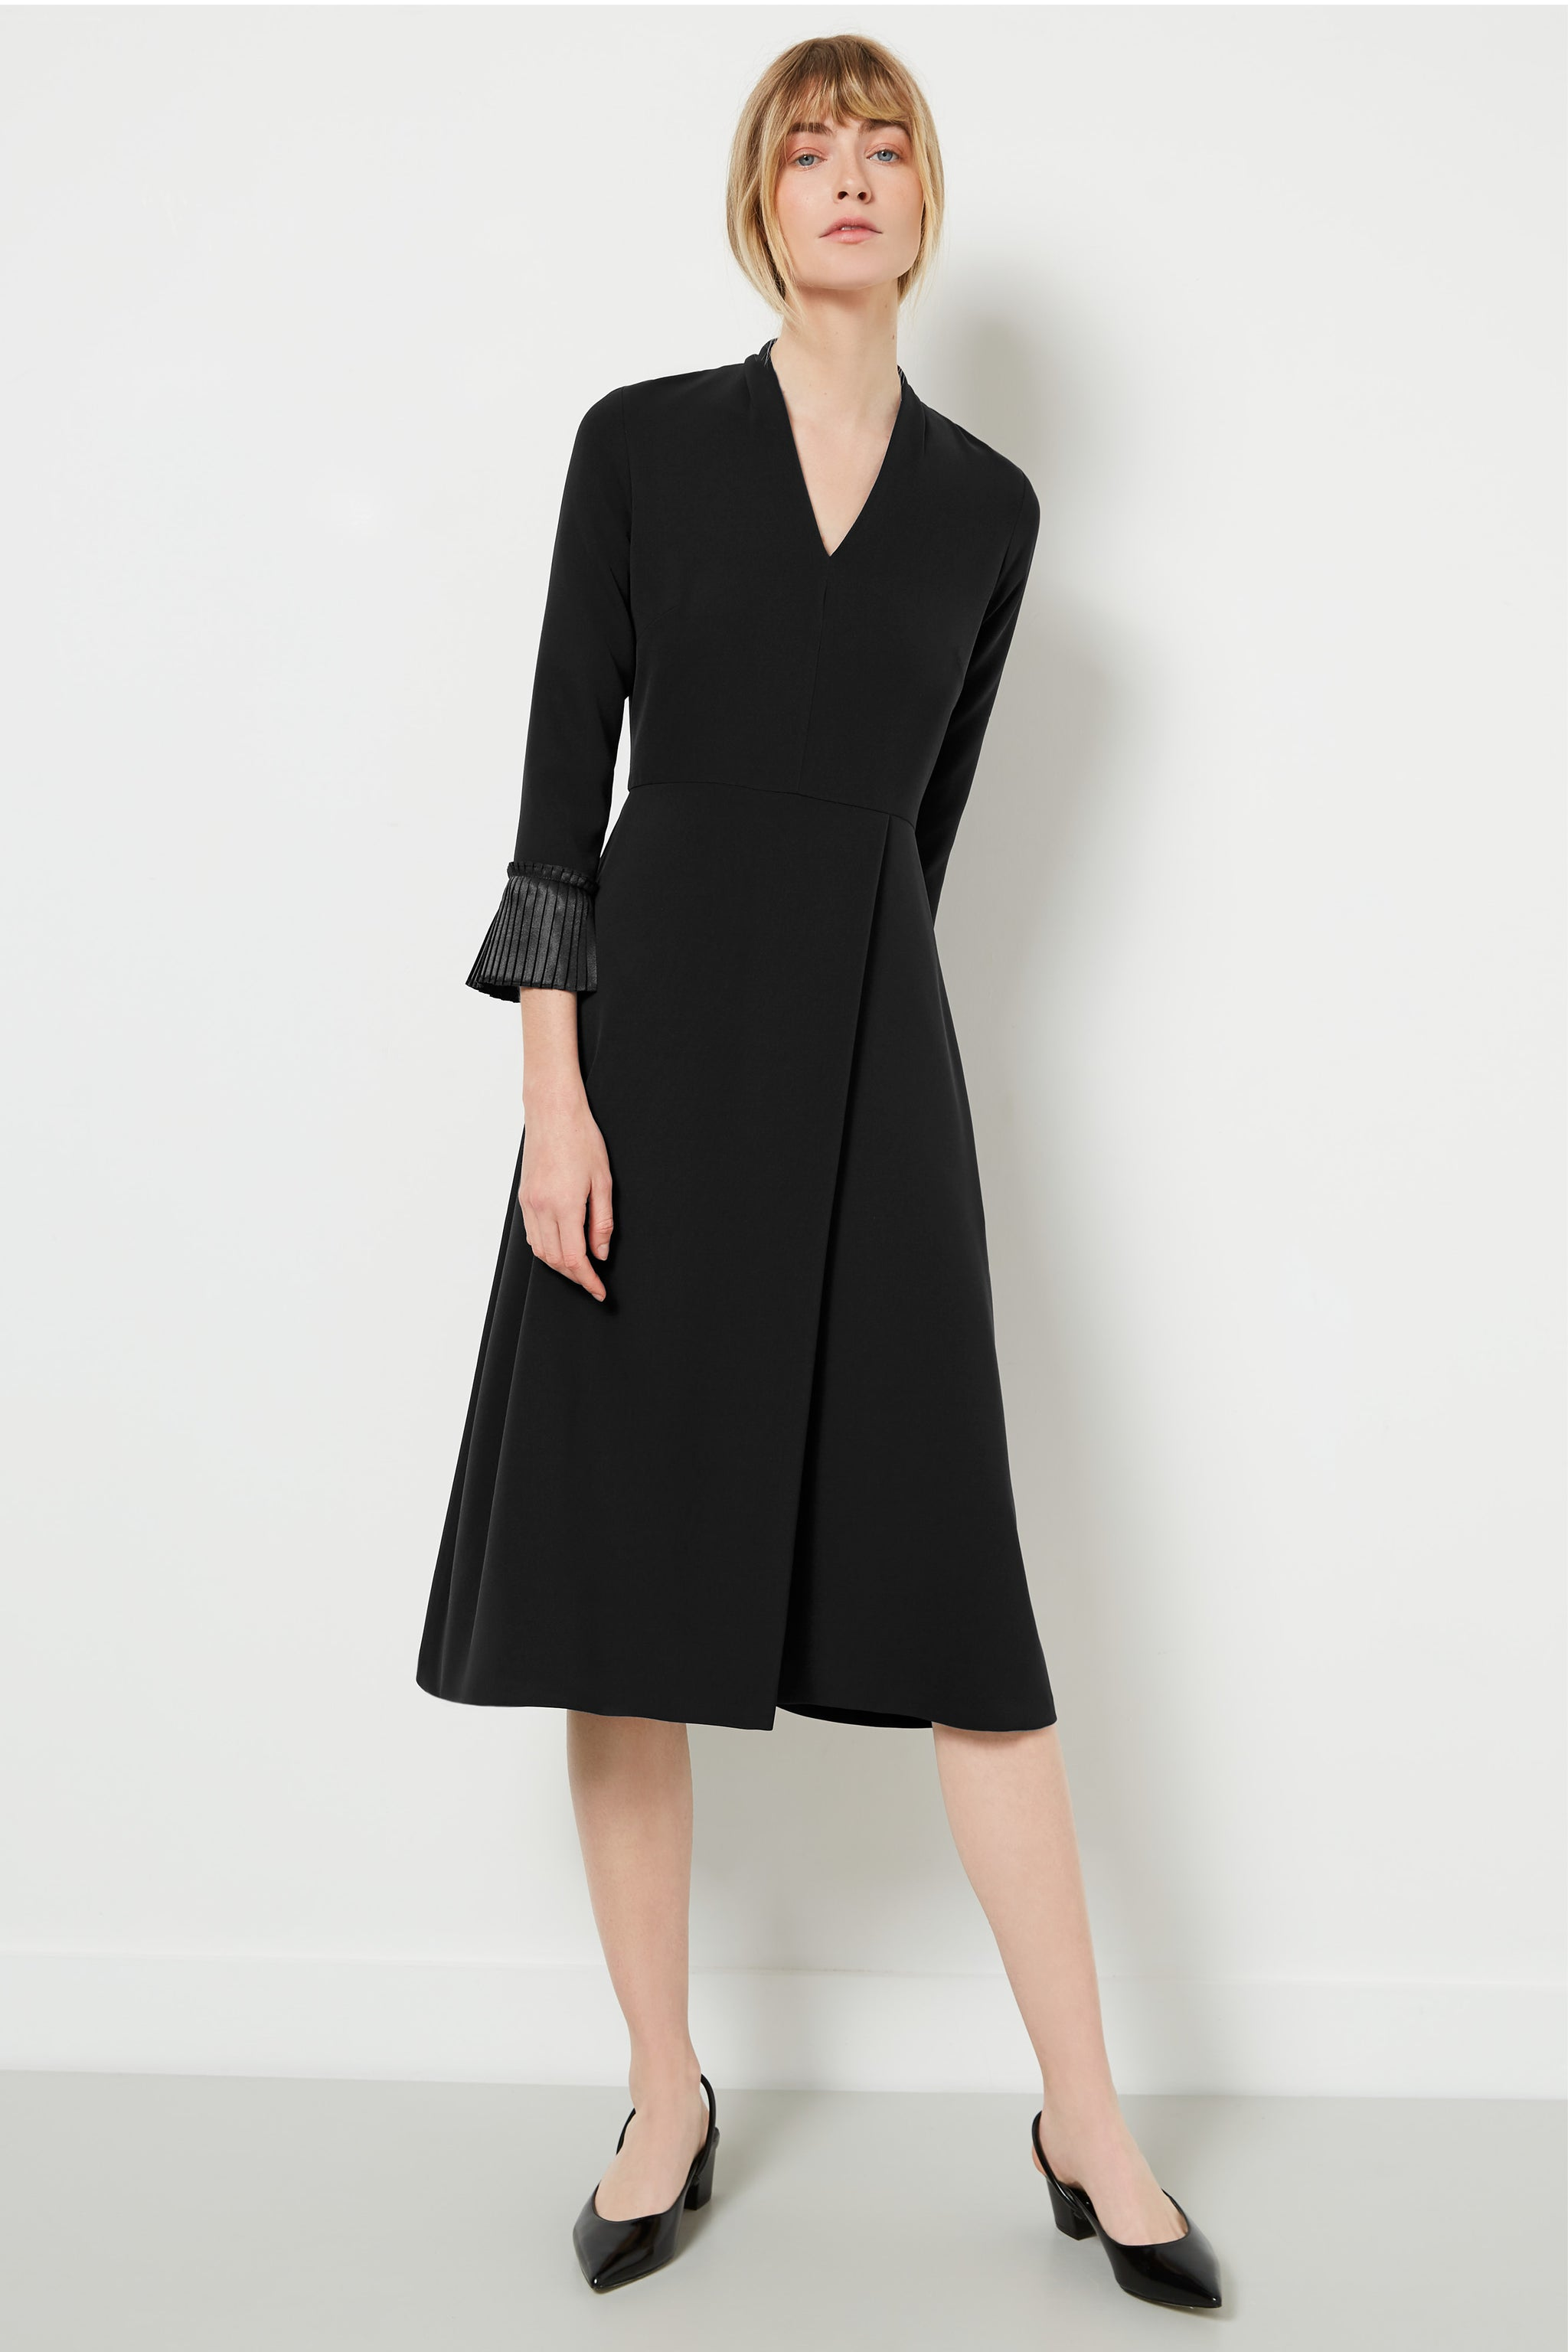 Pimlico Black Dress